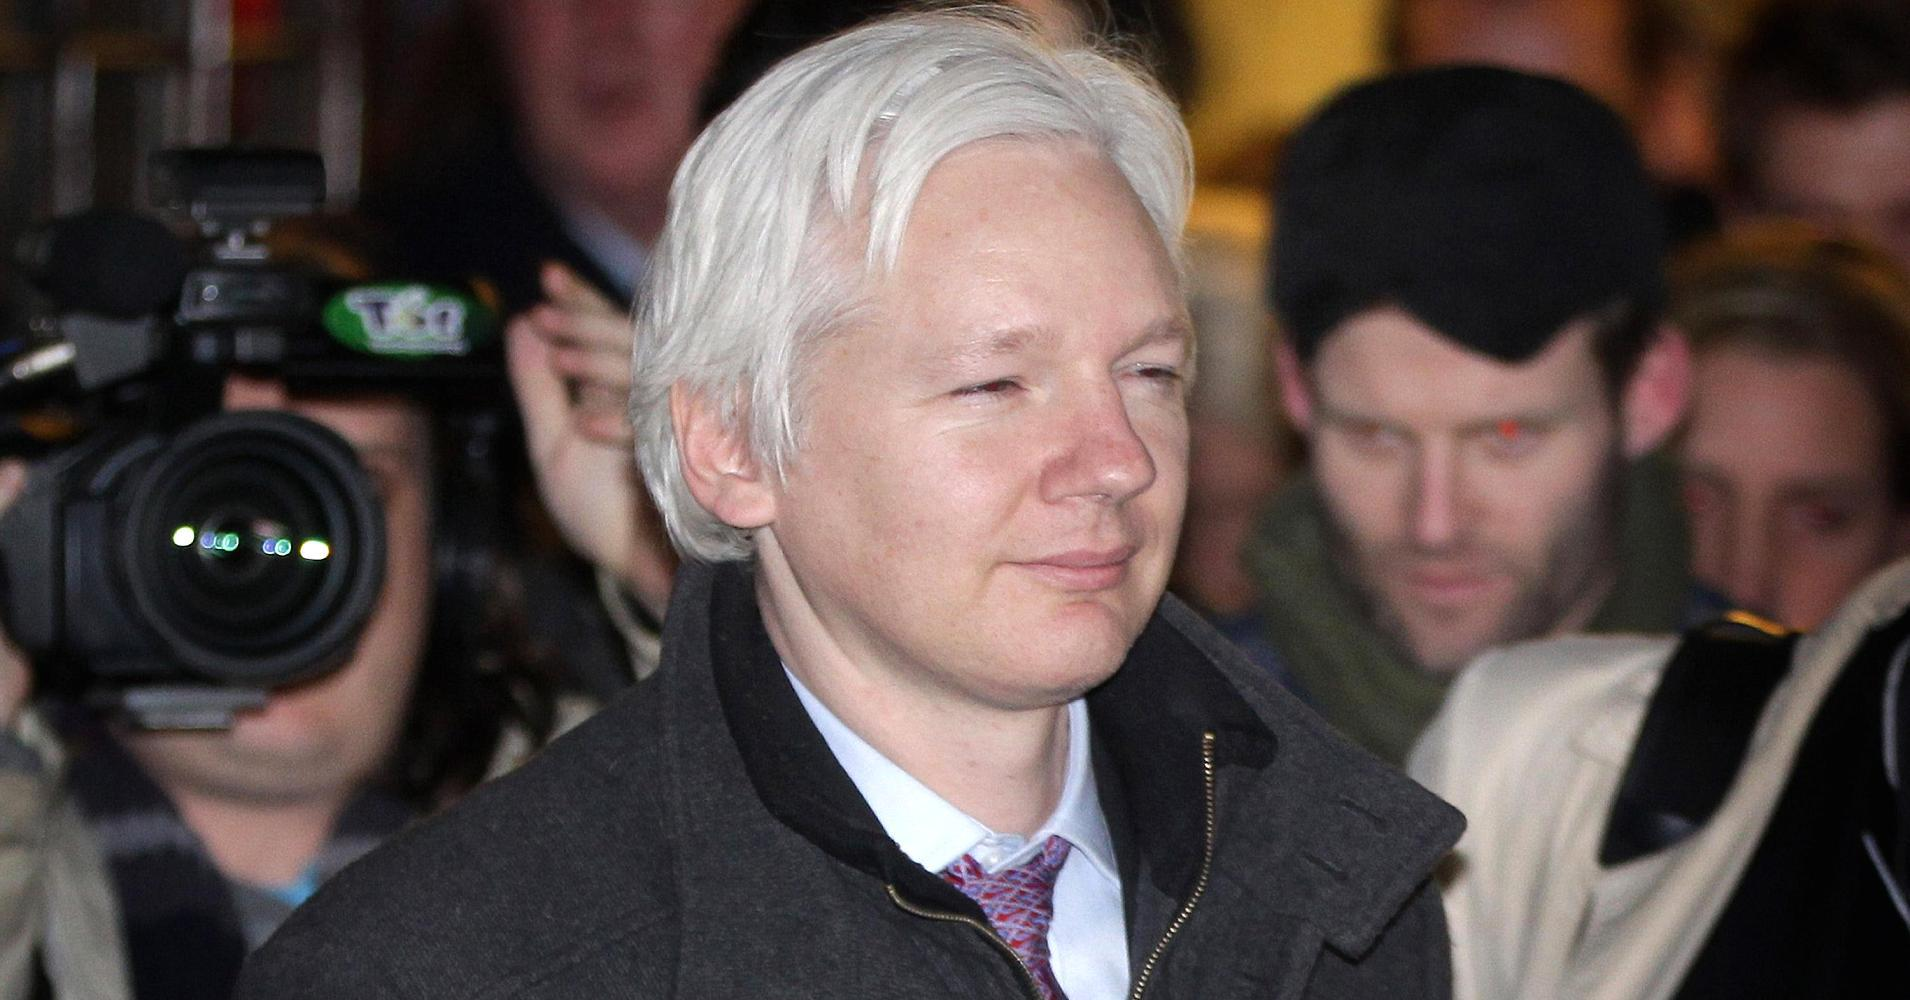 Assange's revenge? DNC WikiLeaks lights up social media, steps on Kaine VP nod